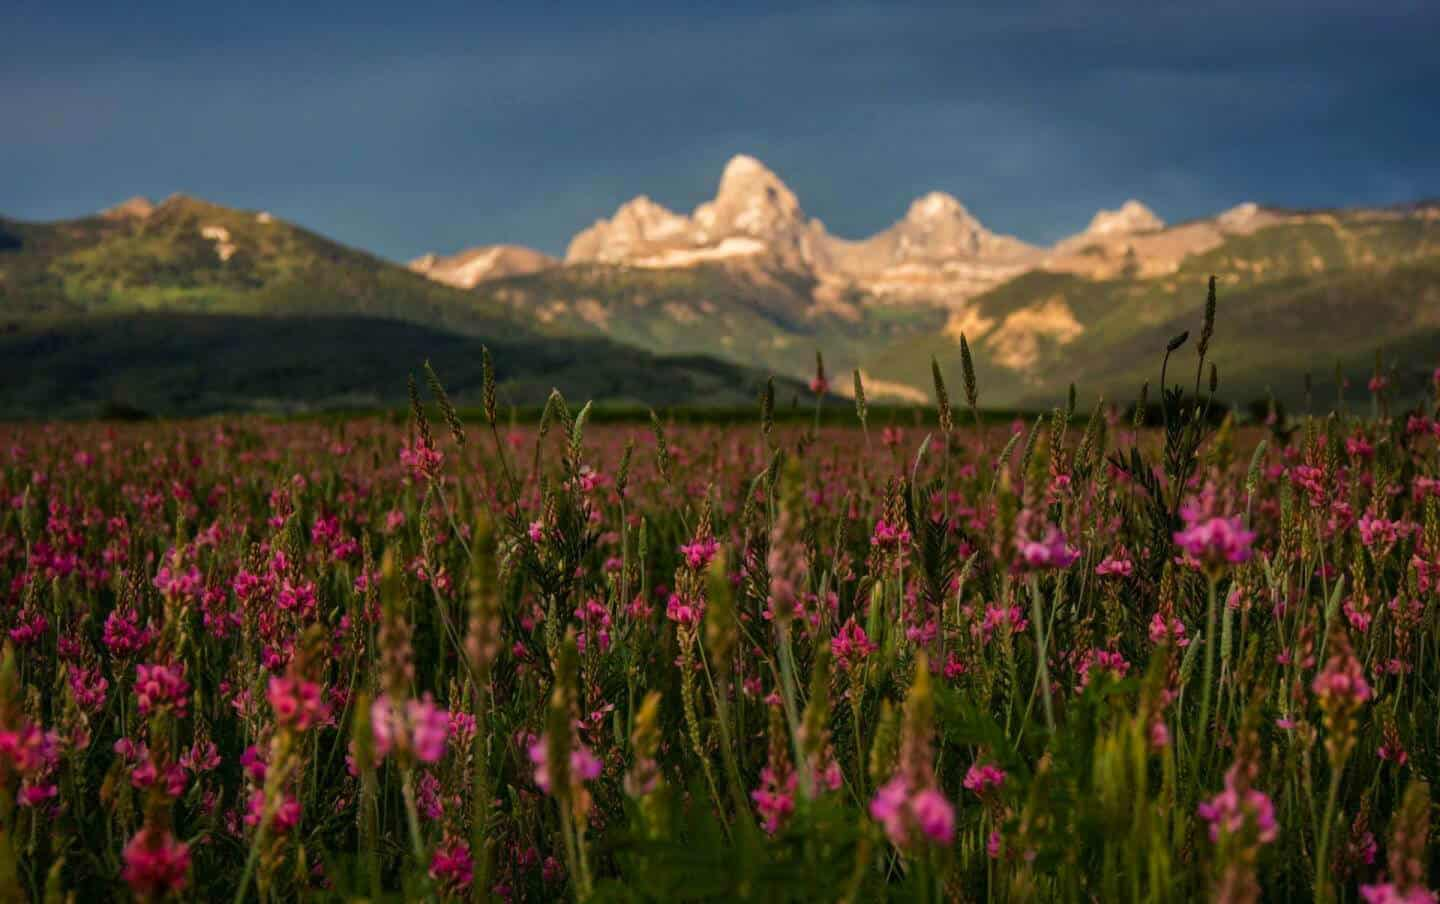 Alta Wyoming Fireweed in bloom marks the transition from Fall to Winter.